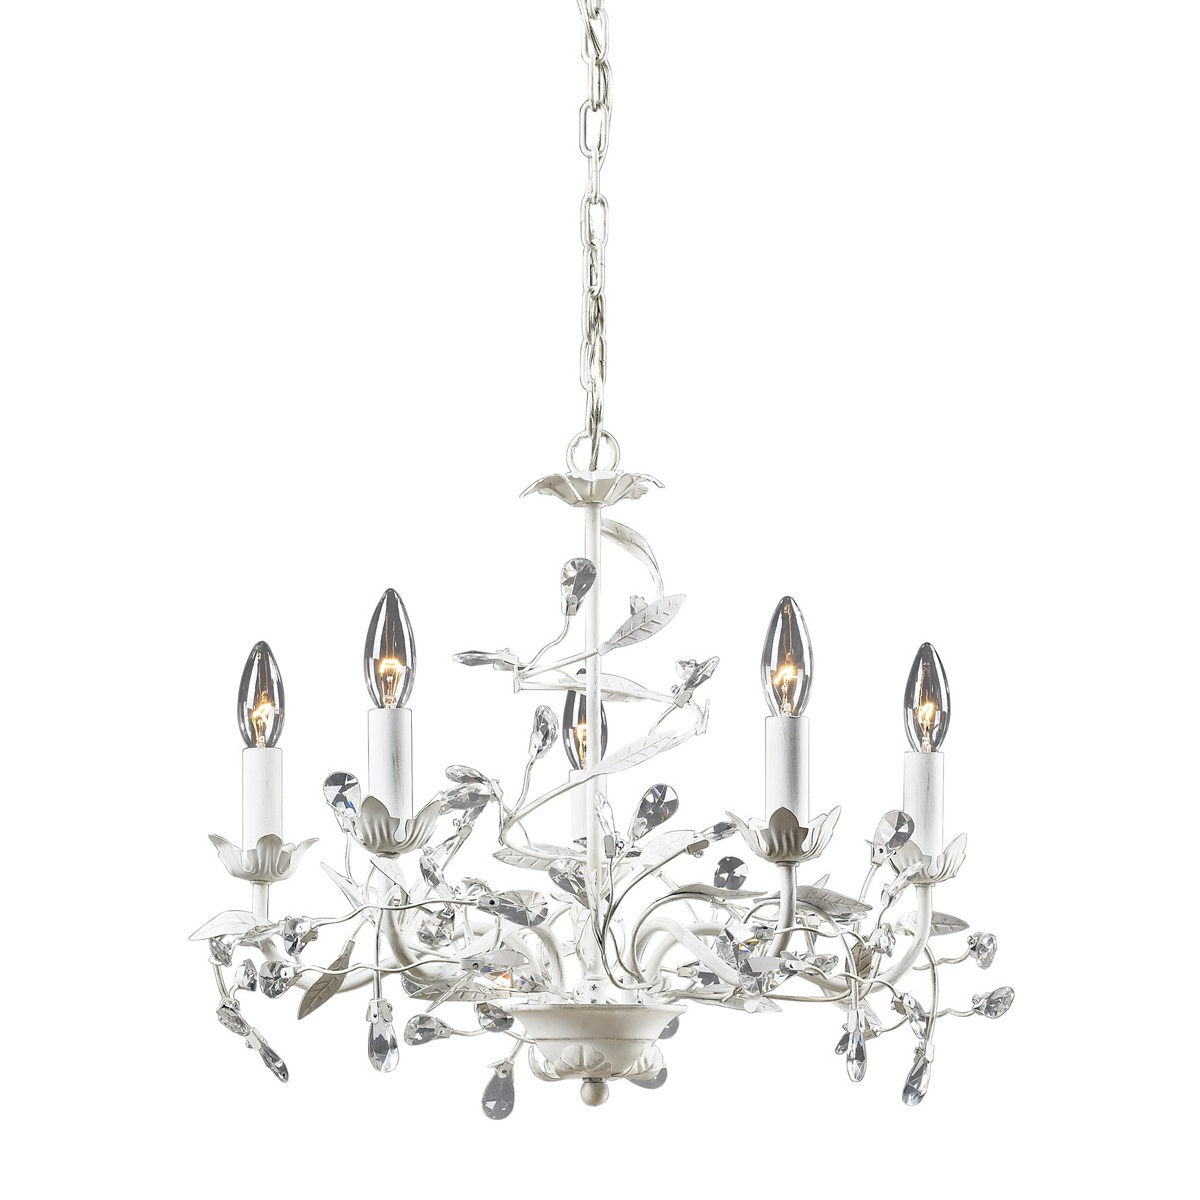 Modern Crystal Chandelier ELK Lighting, Accentuations Brand, Furniture by ABD